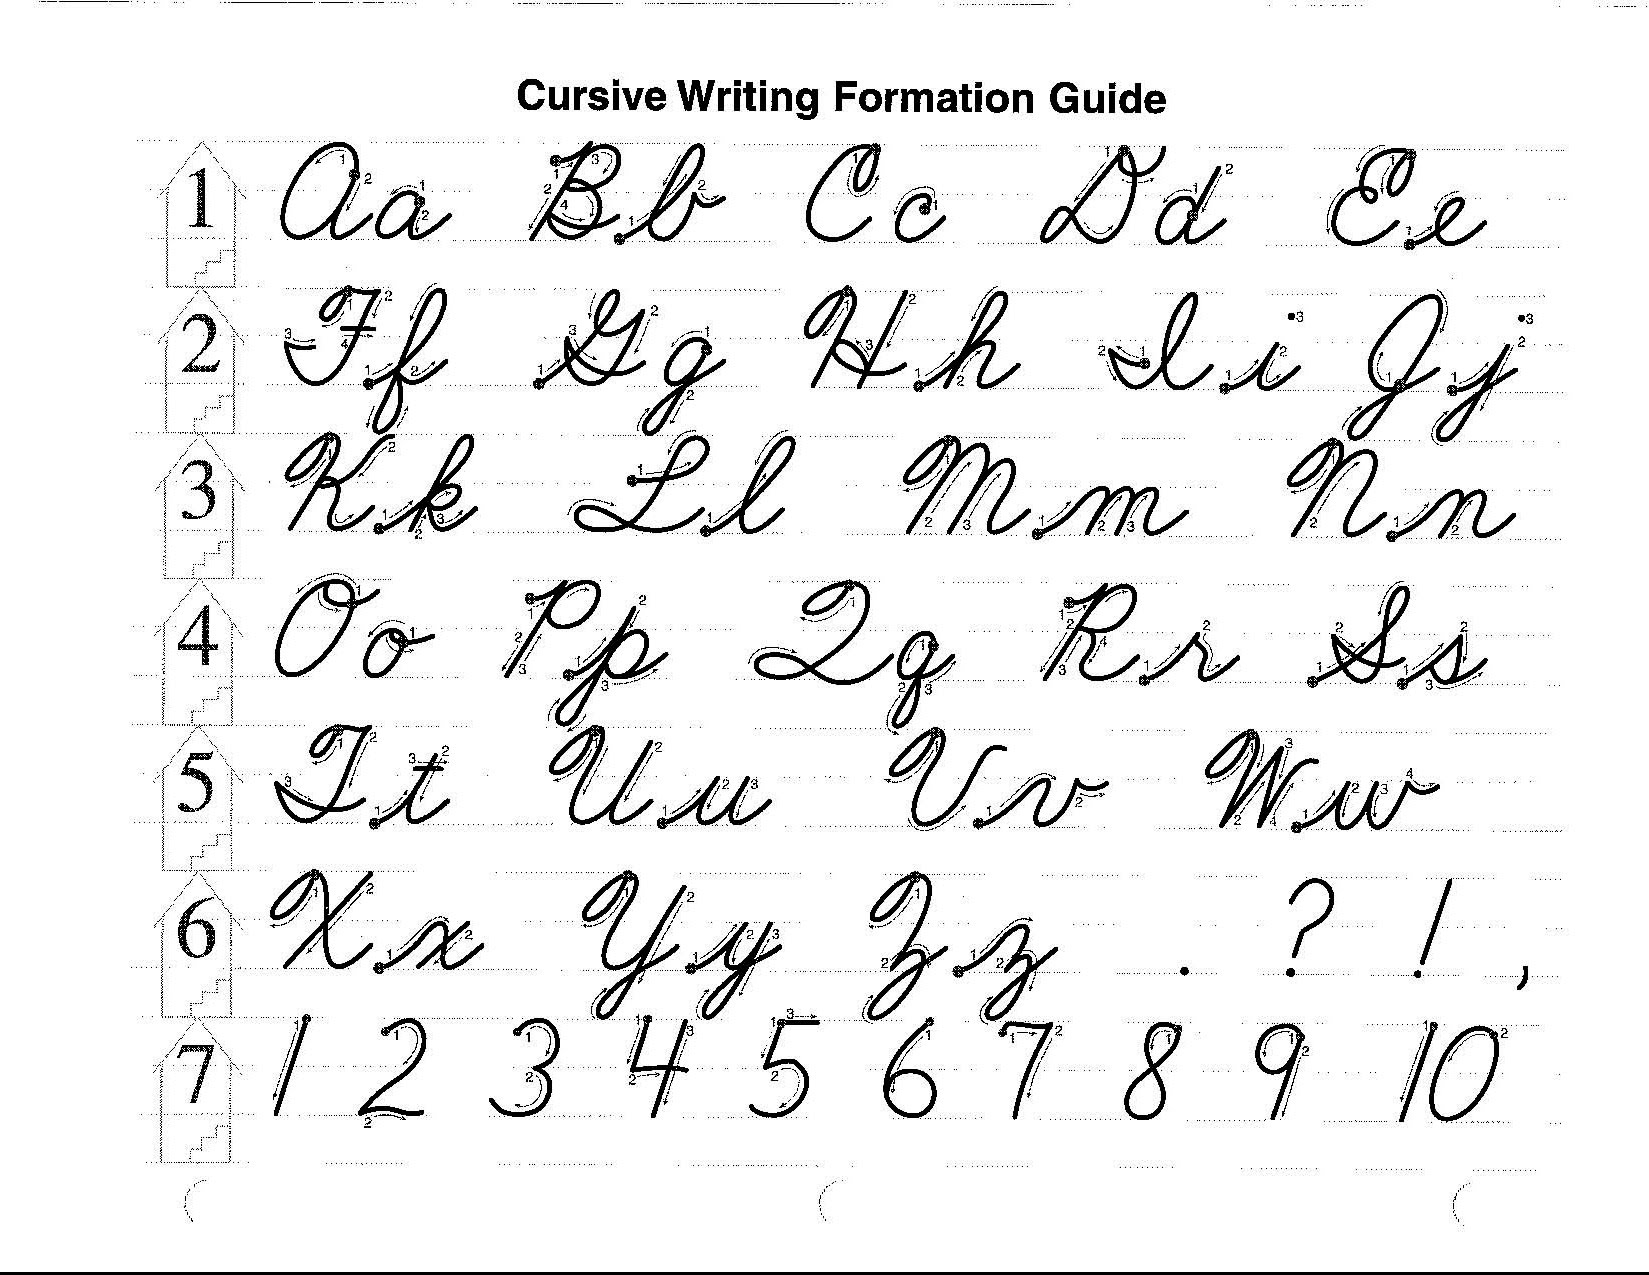 Cursive Writing Alphabet islamichomeeducation – Cursive Writing Alphabet Worksheets